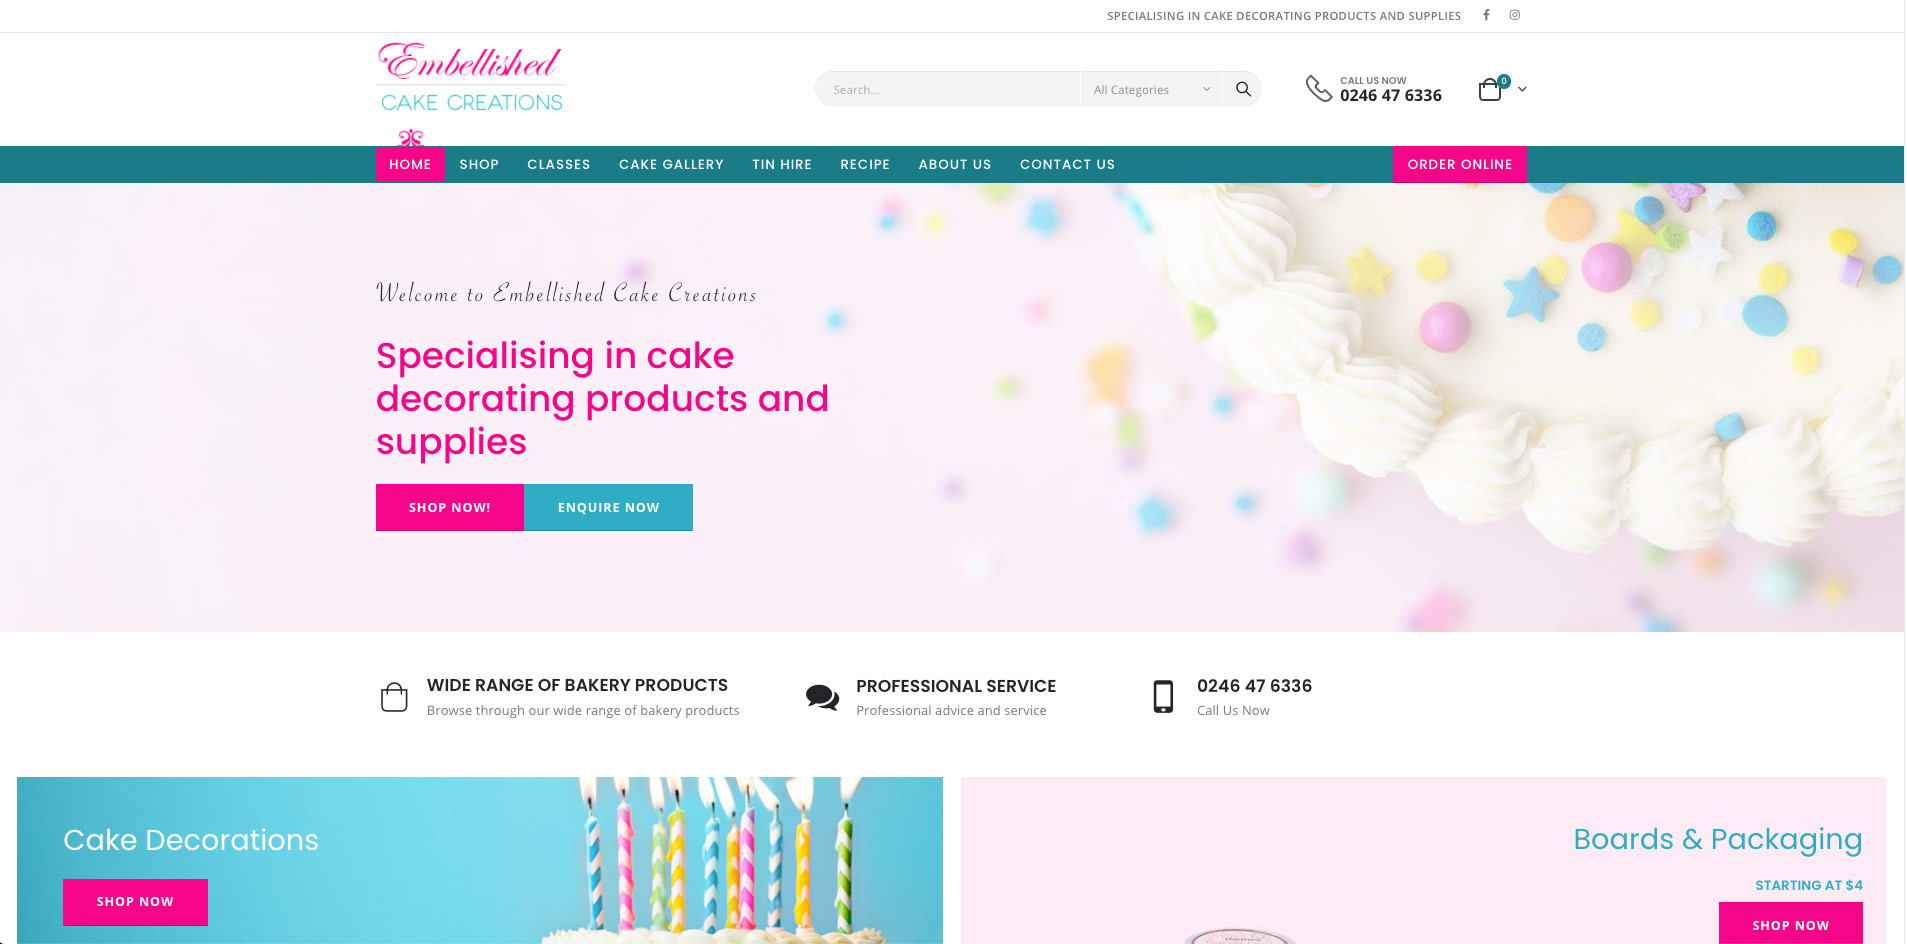 Embellished Cake Creations, specialising in cake decorating products and supplies